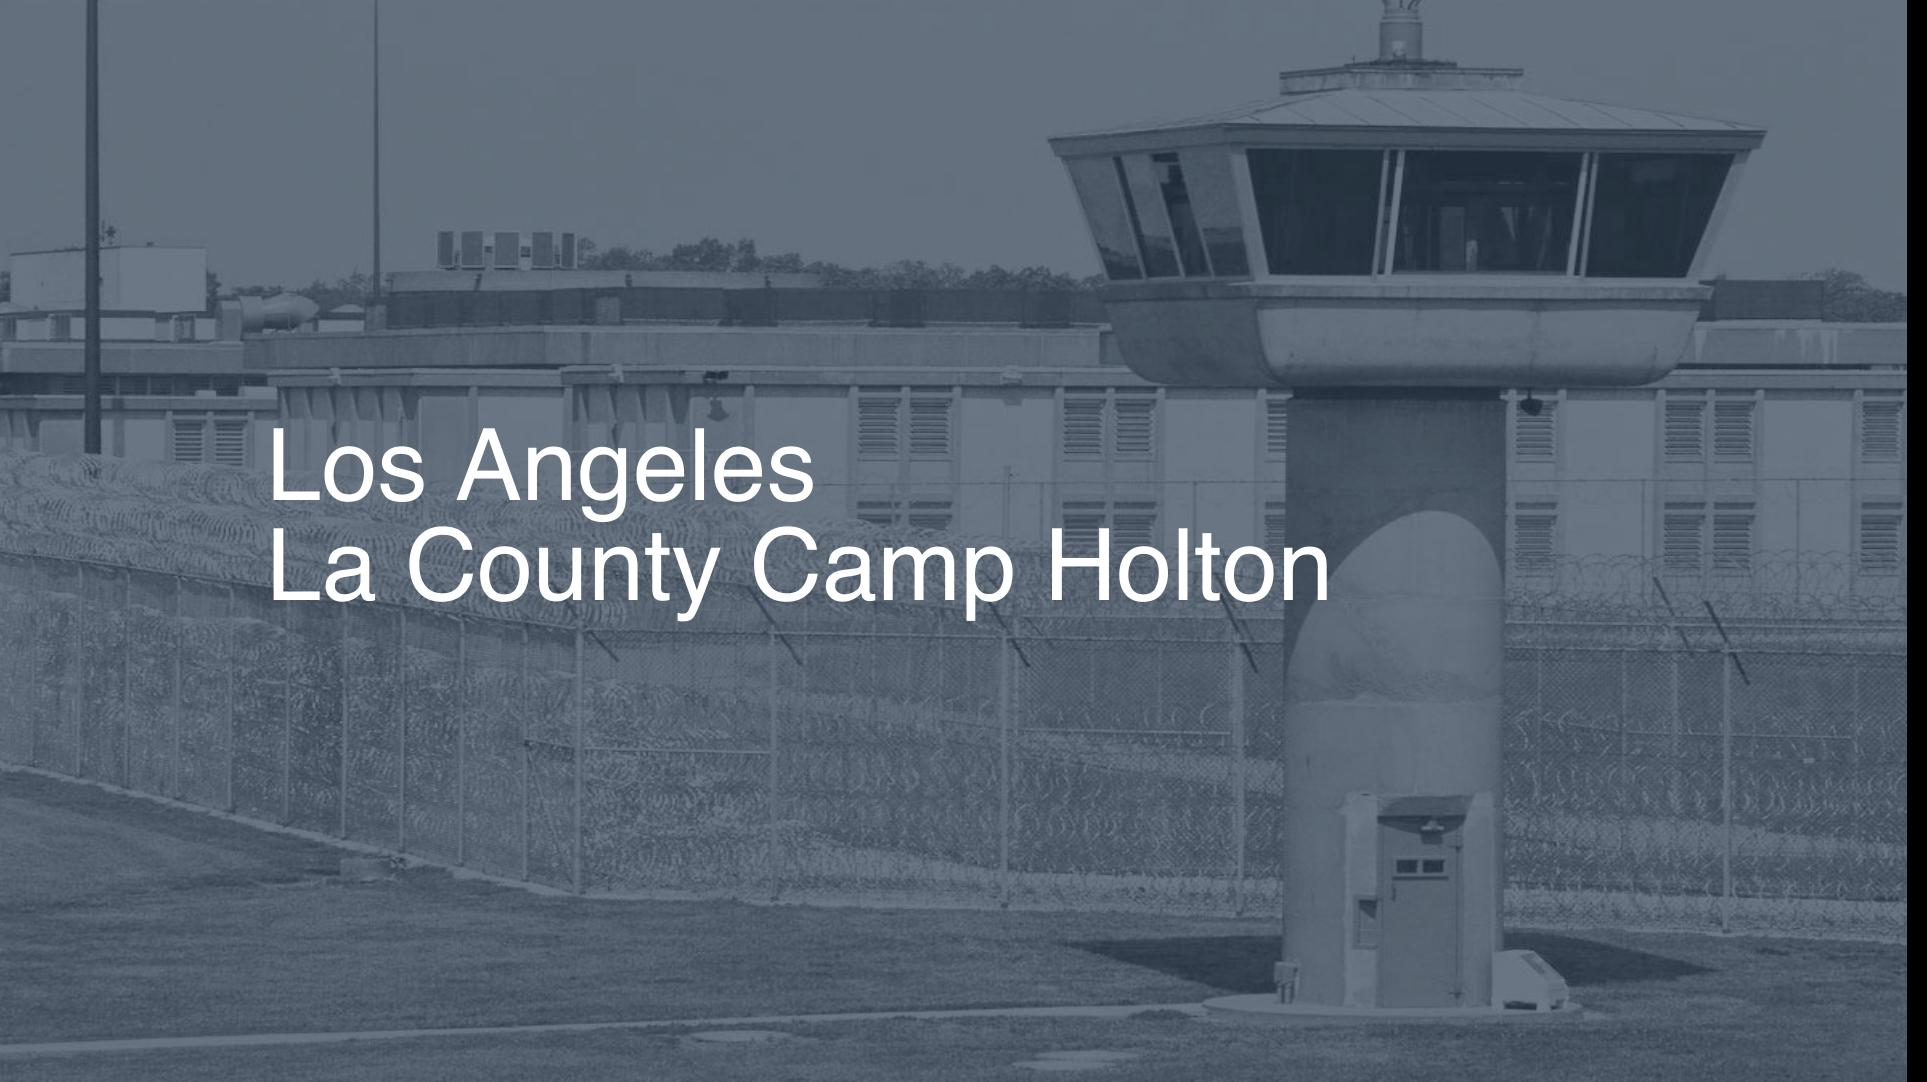 Los Angeles - LA County-Camp Holton correctional facility picture